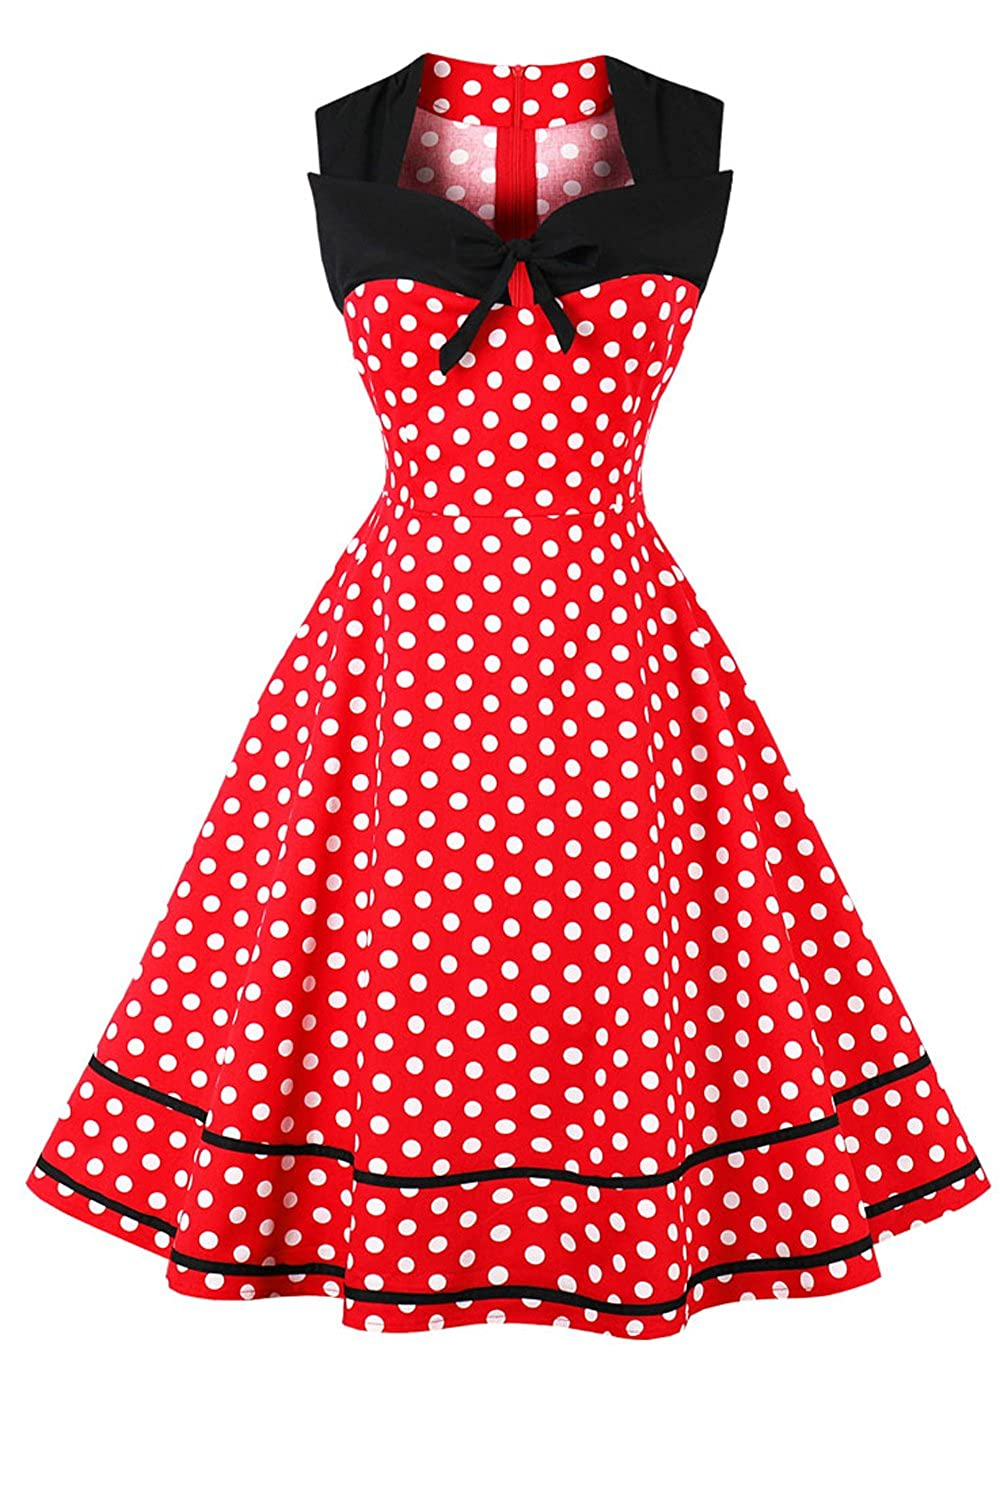 YACUN La Mujer Polka Dot Dress Cocktail Swing Rockabilly Vintage Años 50: Amazon.es: Ropa y accesorios